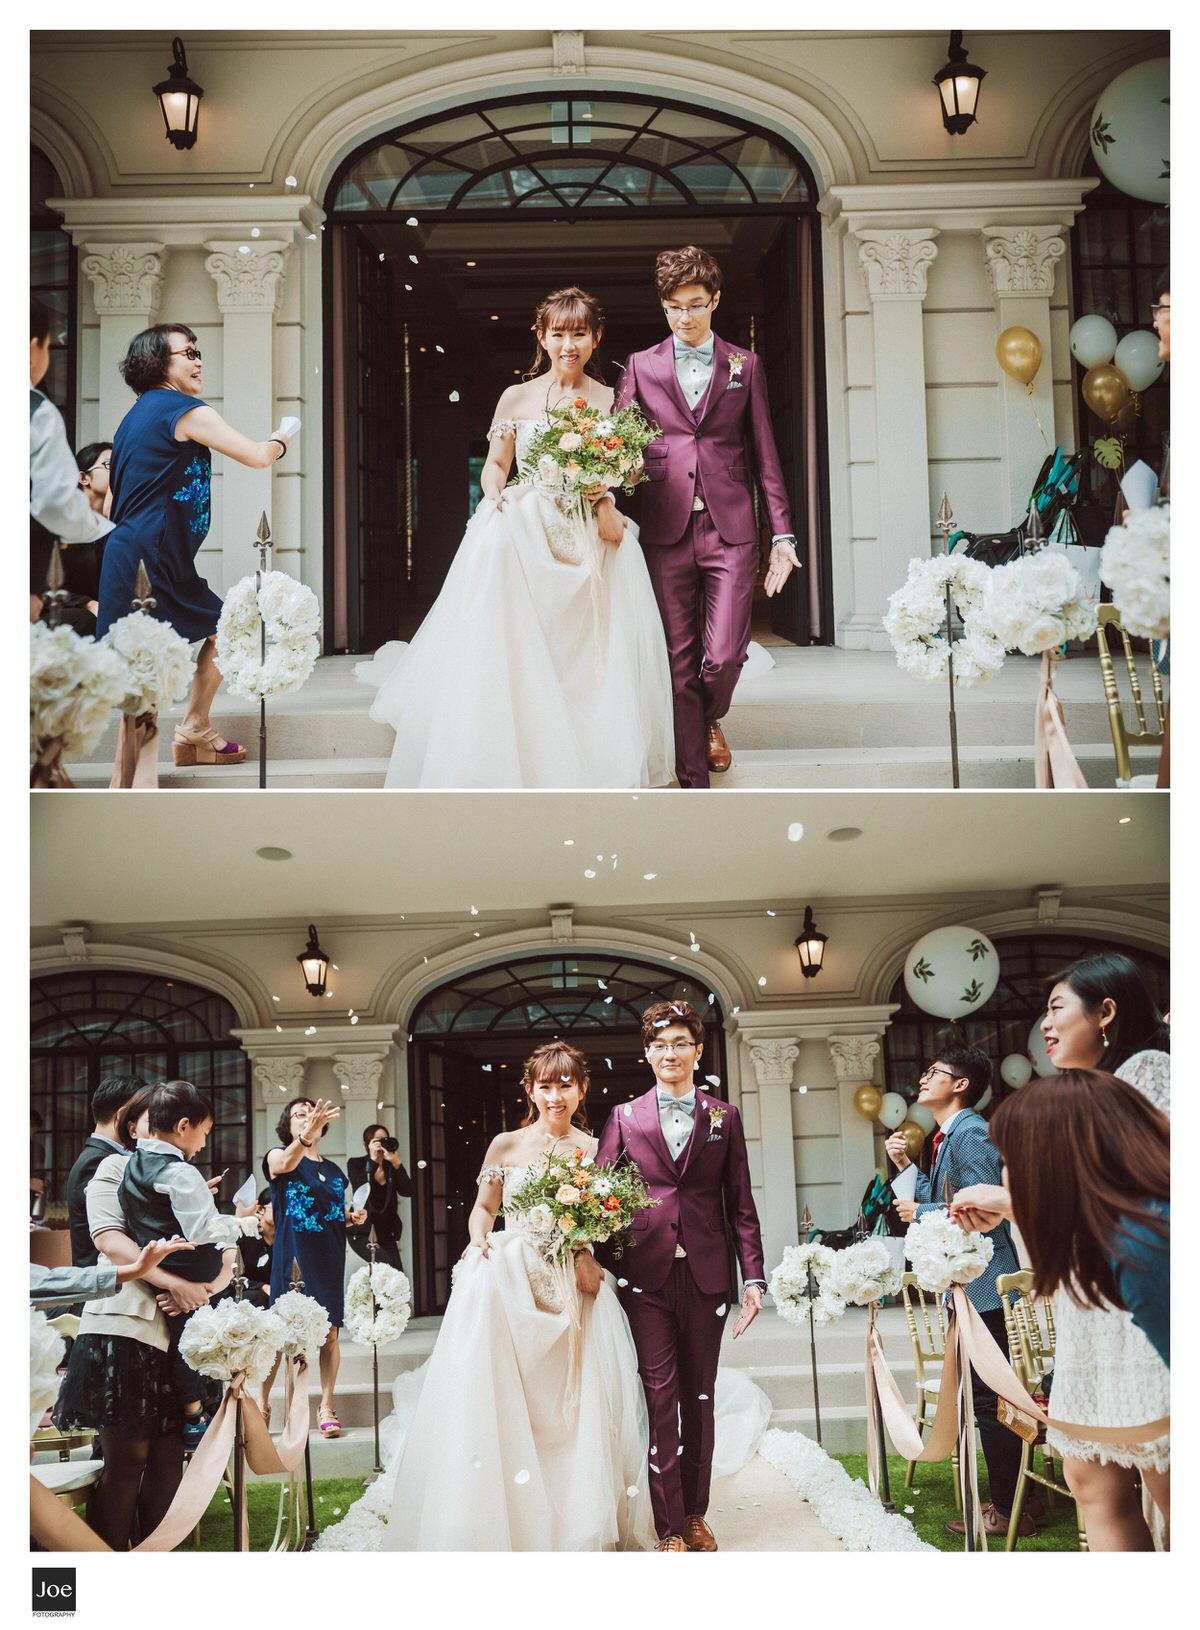 103-felicite-wedding-photo-wentin-joe-fotography.jpg